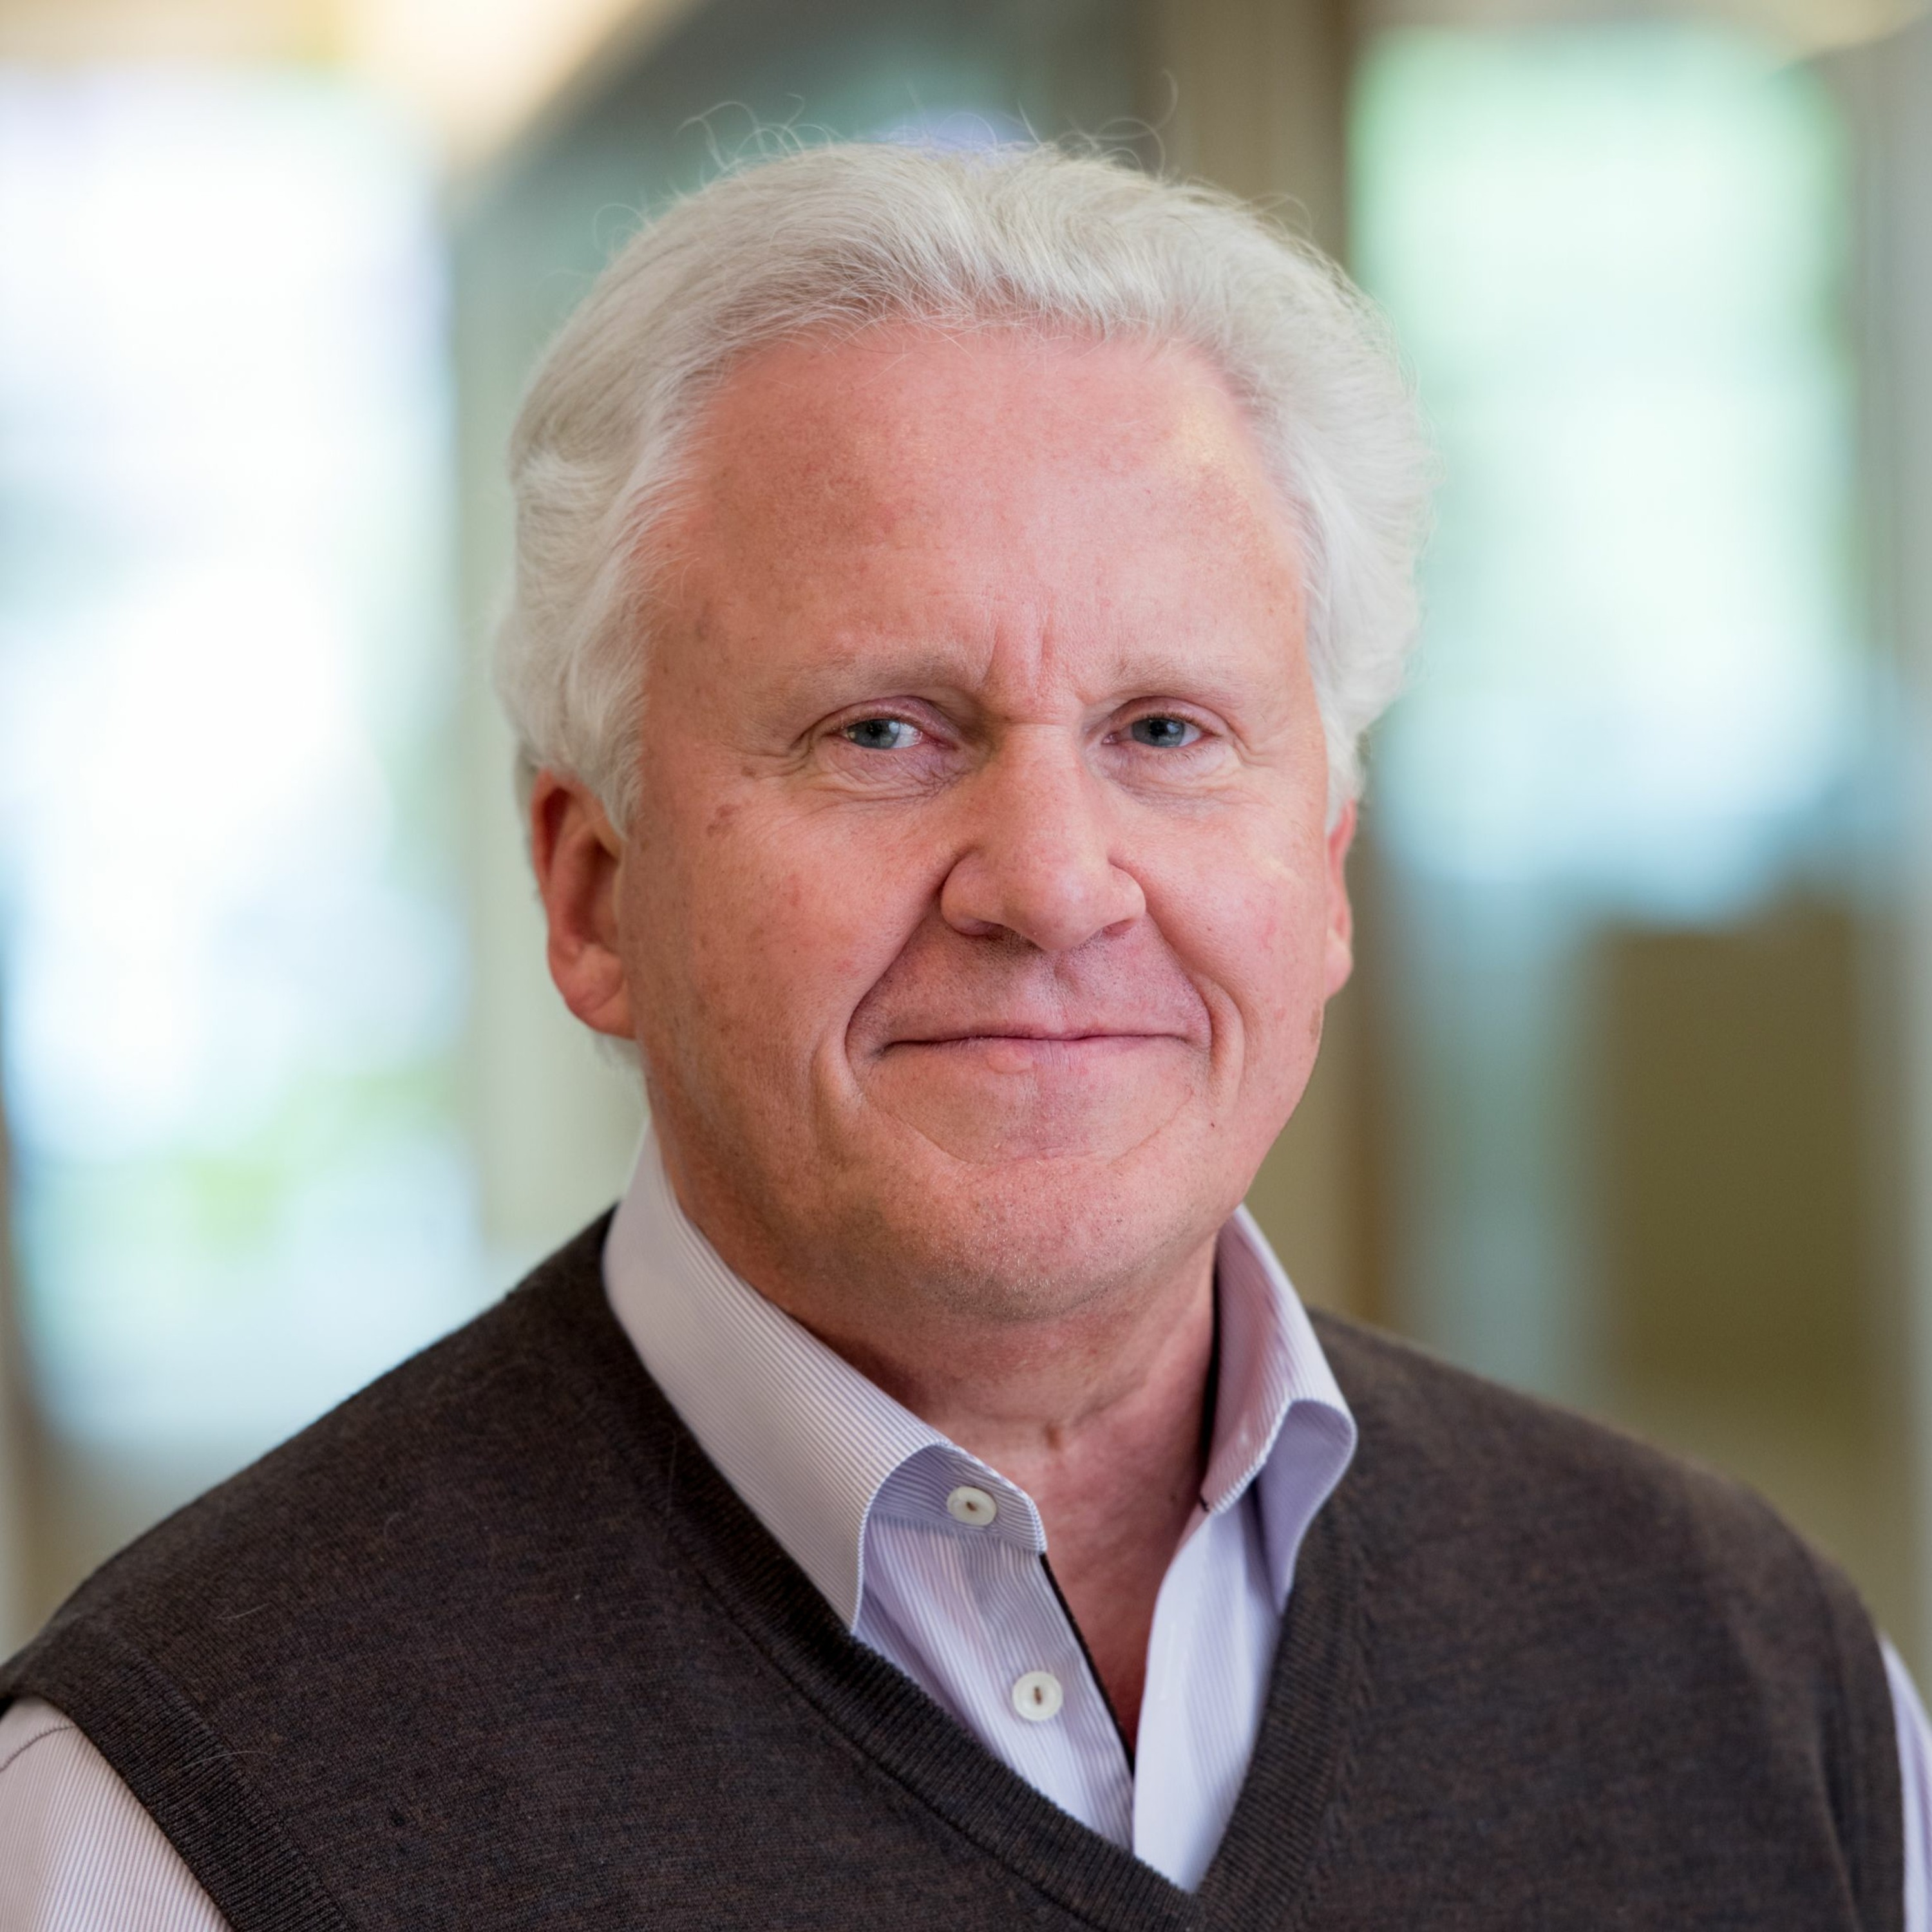 Jeff Immelt, Former GE CEO - Globalization, Crisis Leadership, & 16 Years as CEO